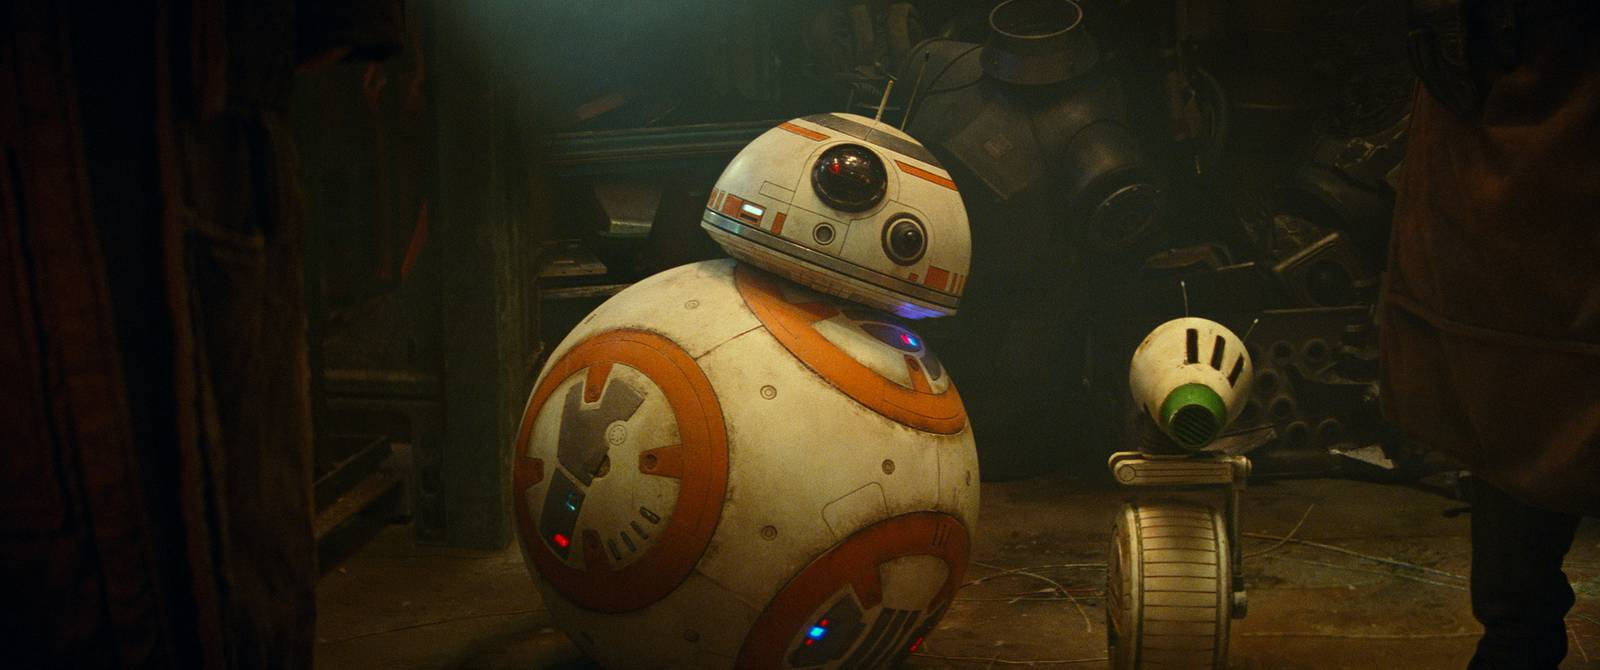 Star Wars The Rise of Skywalker: BB-8 (© The Walt Disney Company)